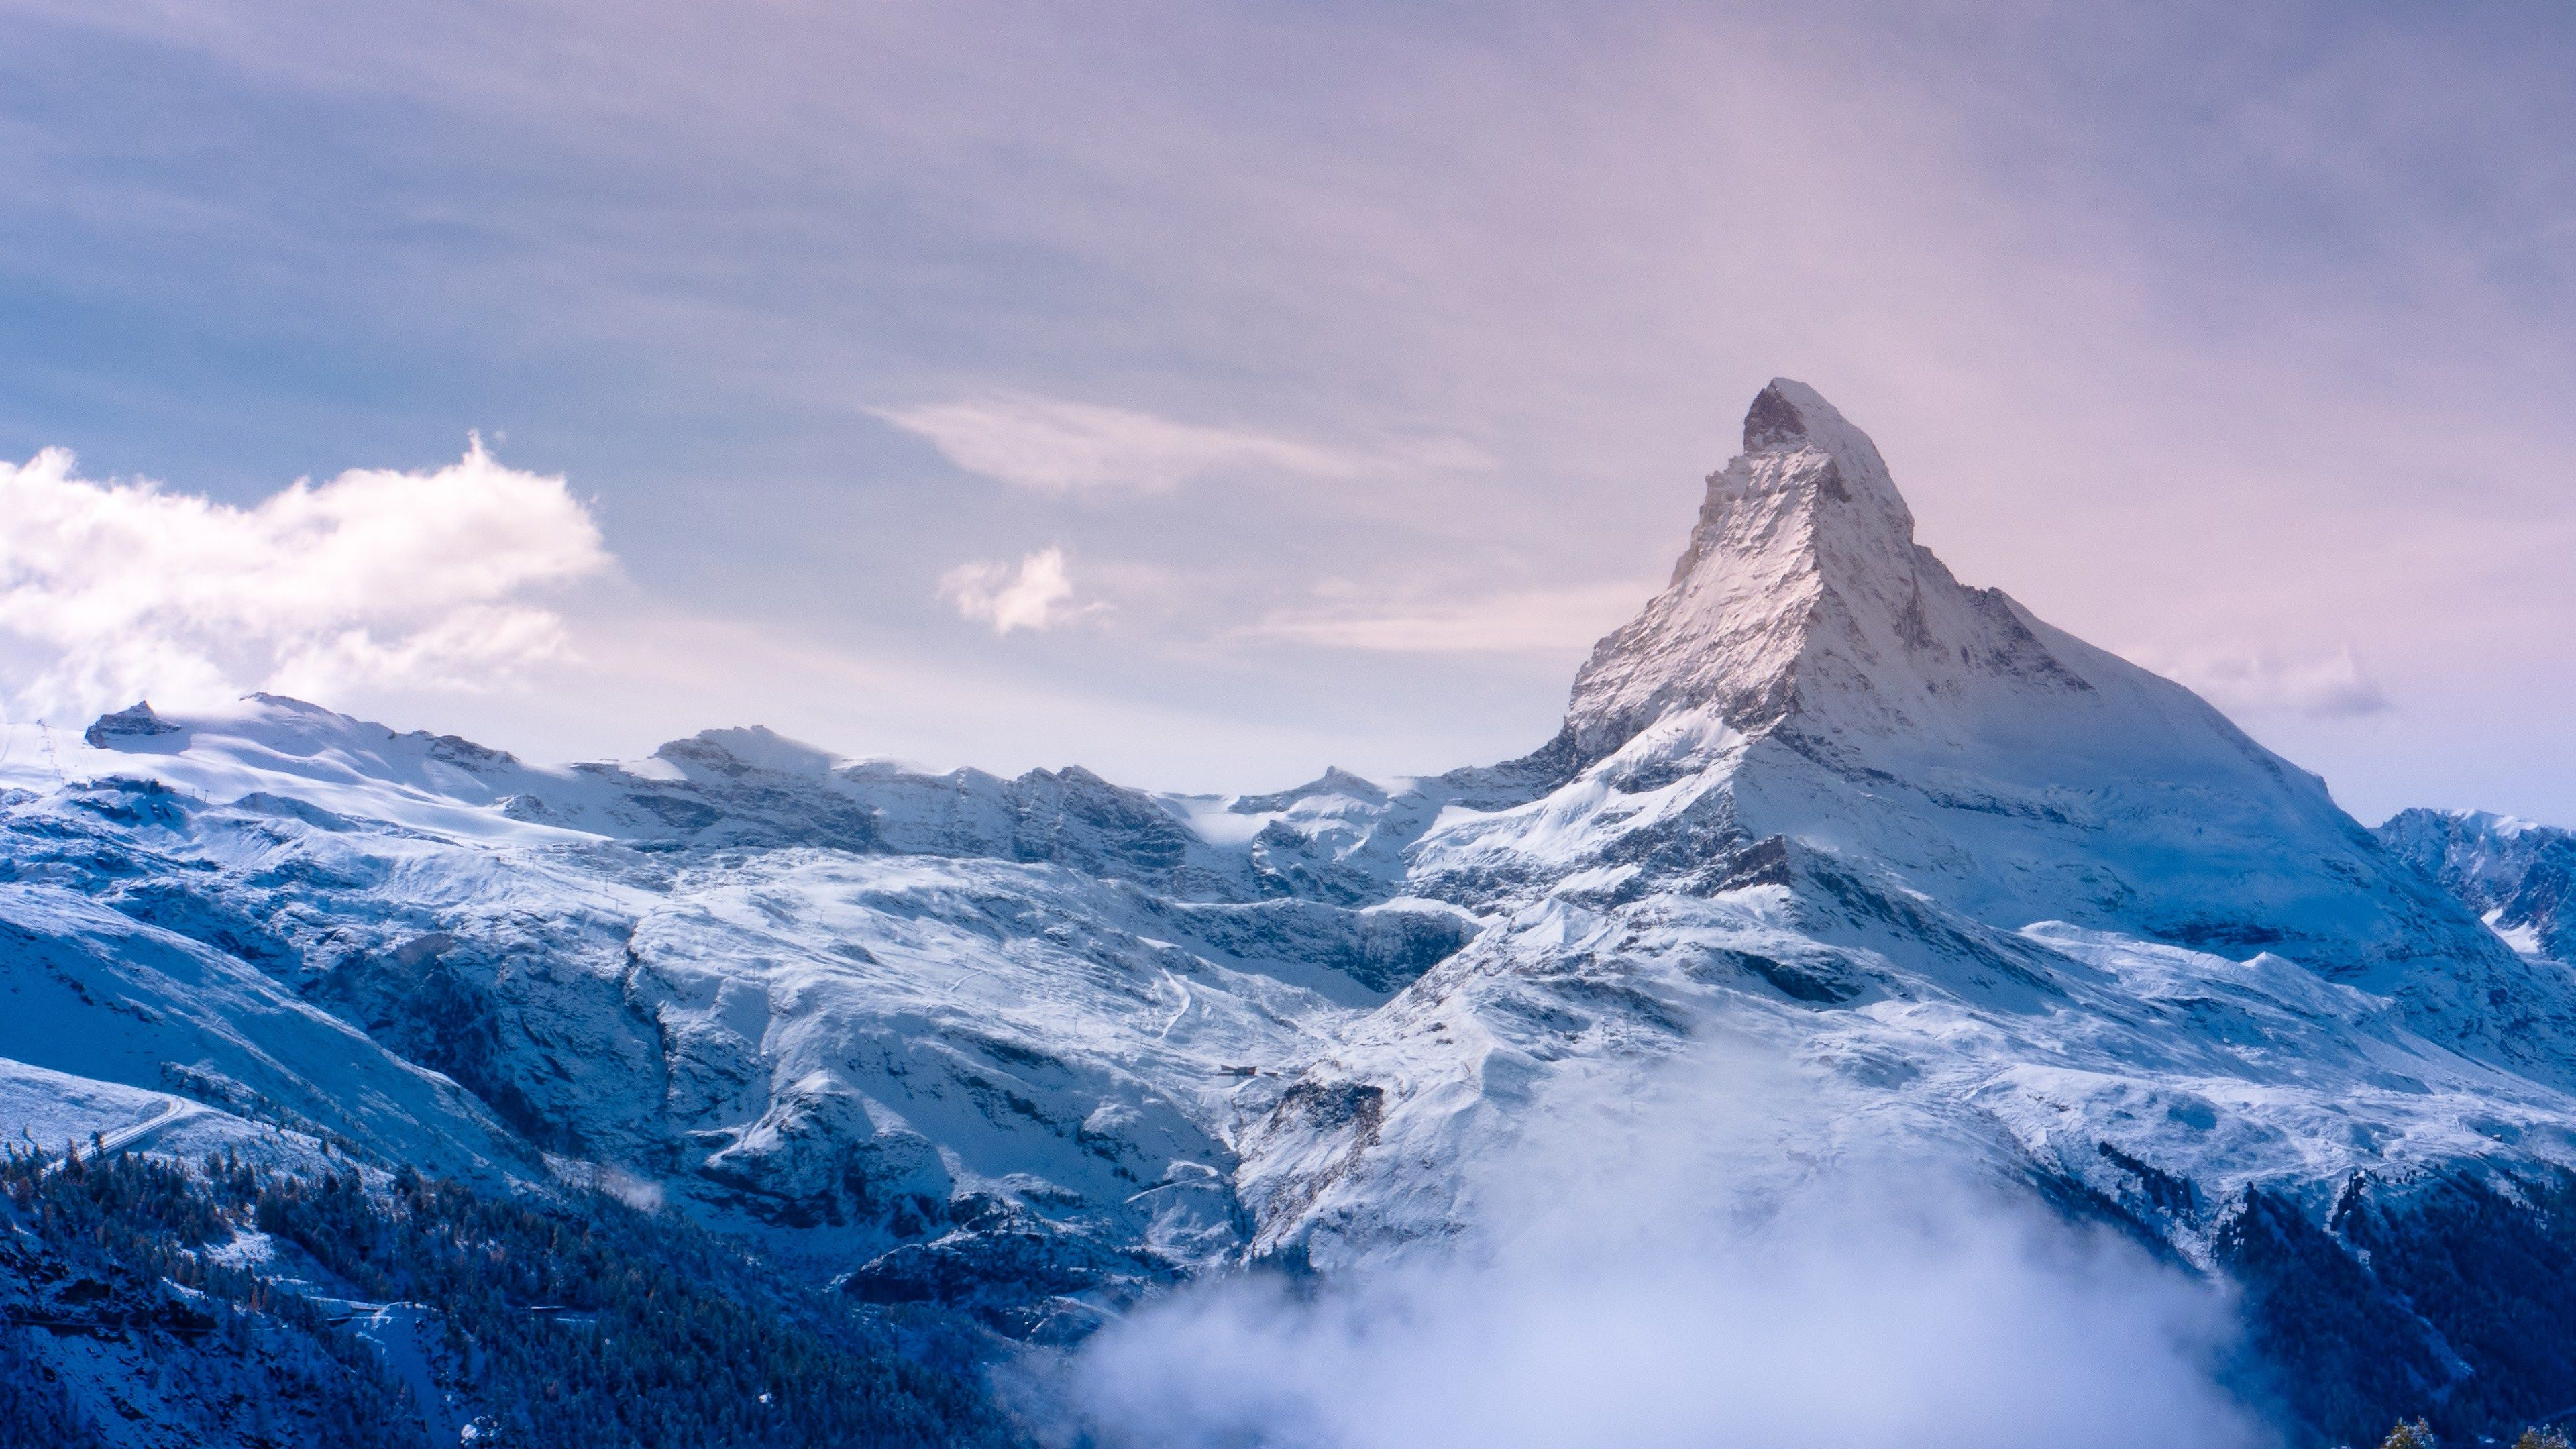 4k Mountain Wallpapers Top Free 4k Mountain Backgrounds